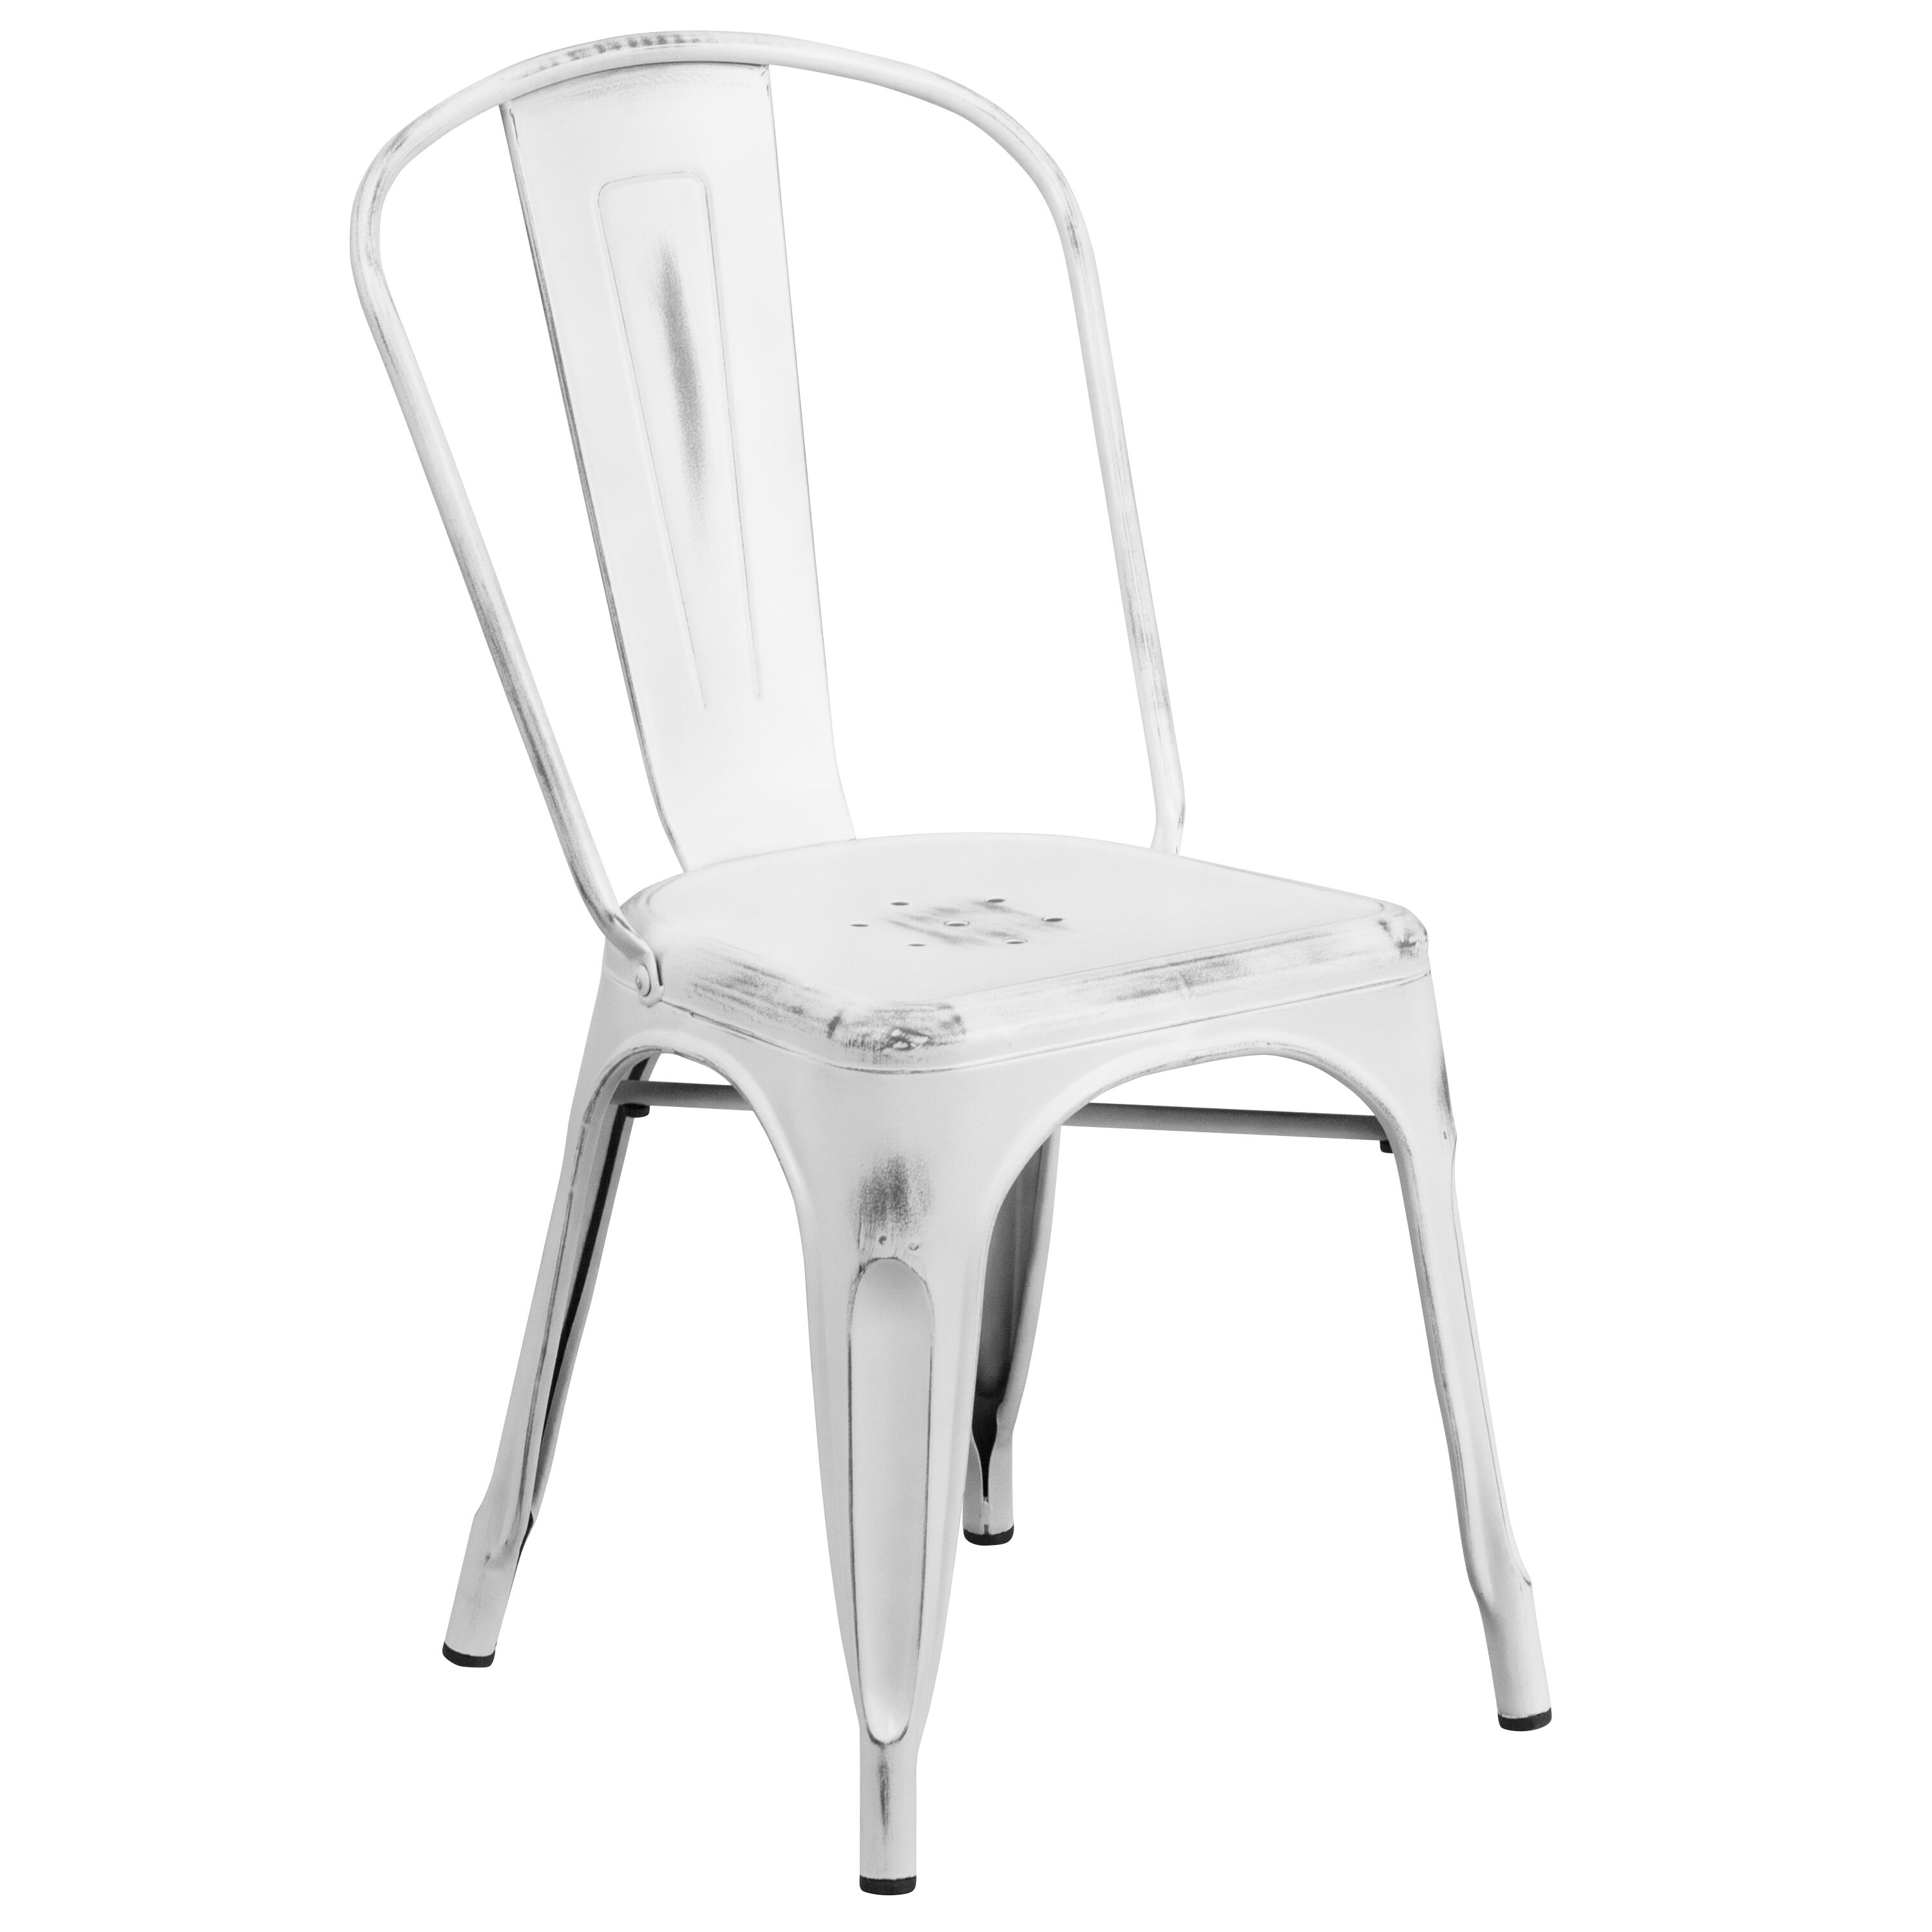 Distressed white metal chair et 3534 wh gg stackchairs4less com